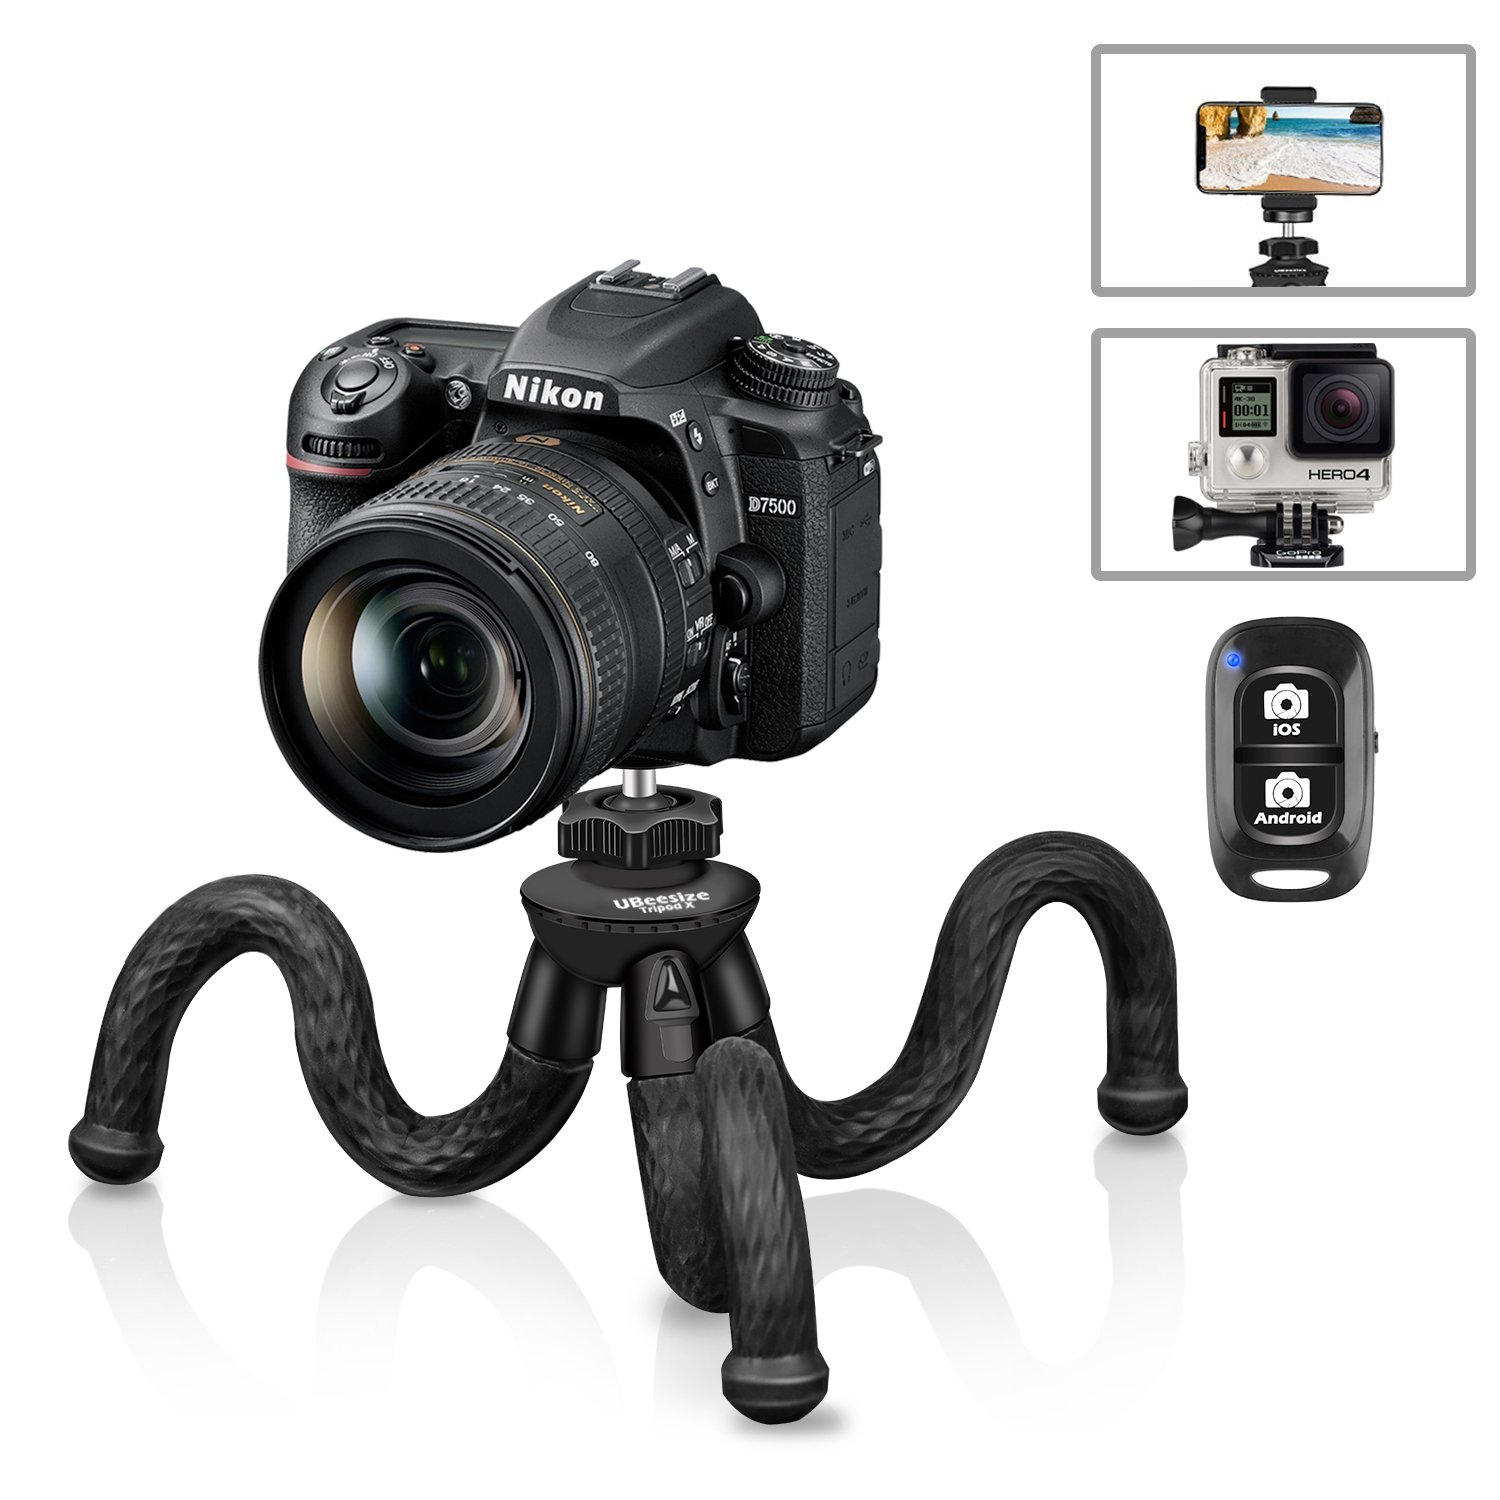 Flexible Camera Tripod, UBeesize 12 inch Mini Tripod Stand GoPro/Action Cam/DSLR Canon Nikon Sony, Smartphone Tripod Stand Cell Phone Holder, Compatible with iPhone/Android (3 in 1) - Waterproof Tripod X Black